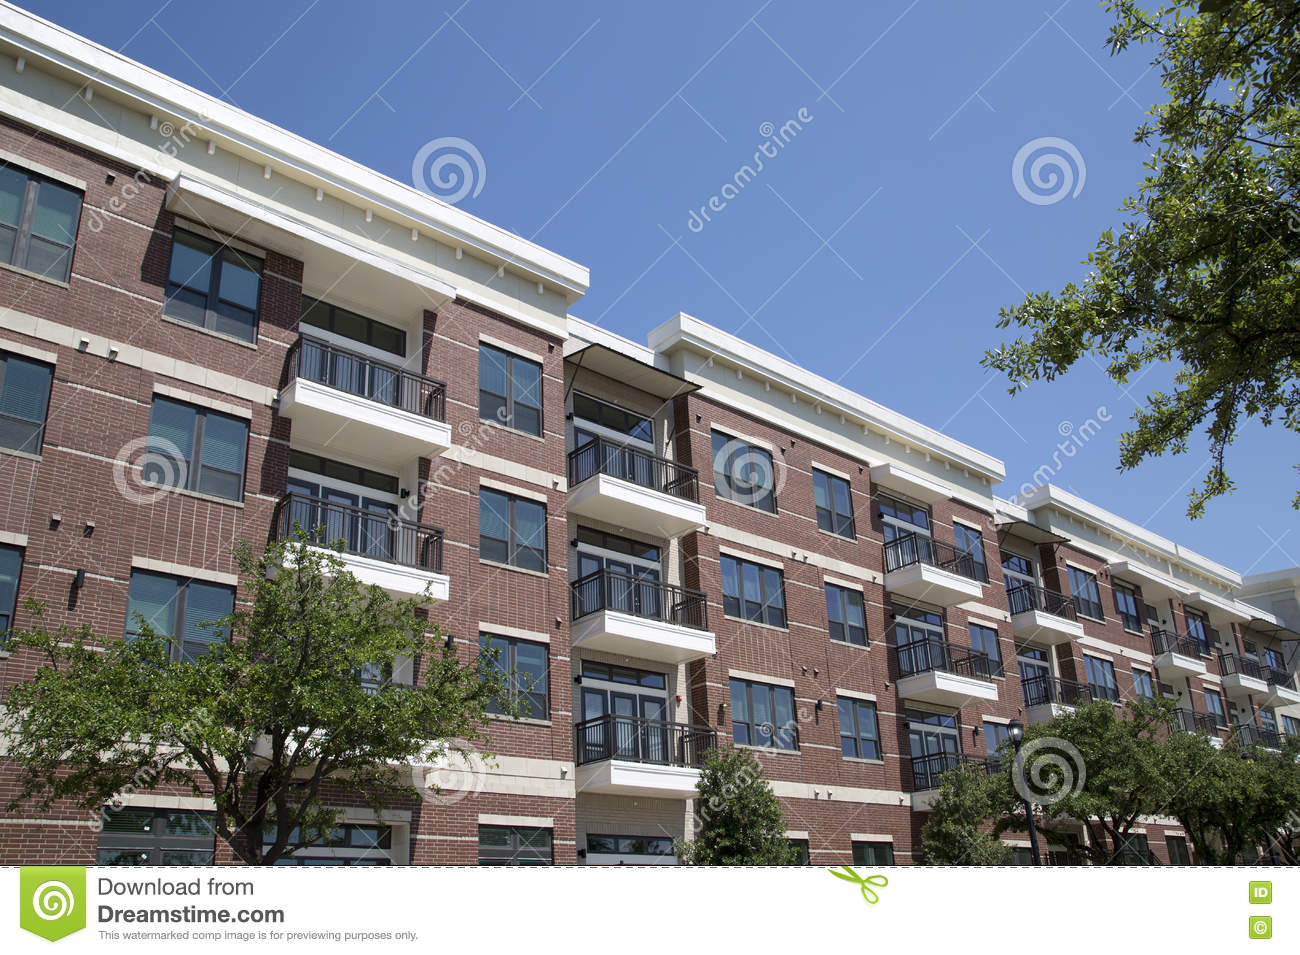 new nice apartment buildings with balcony stock photo - image